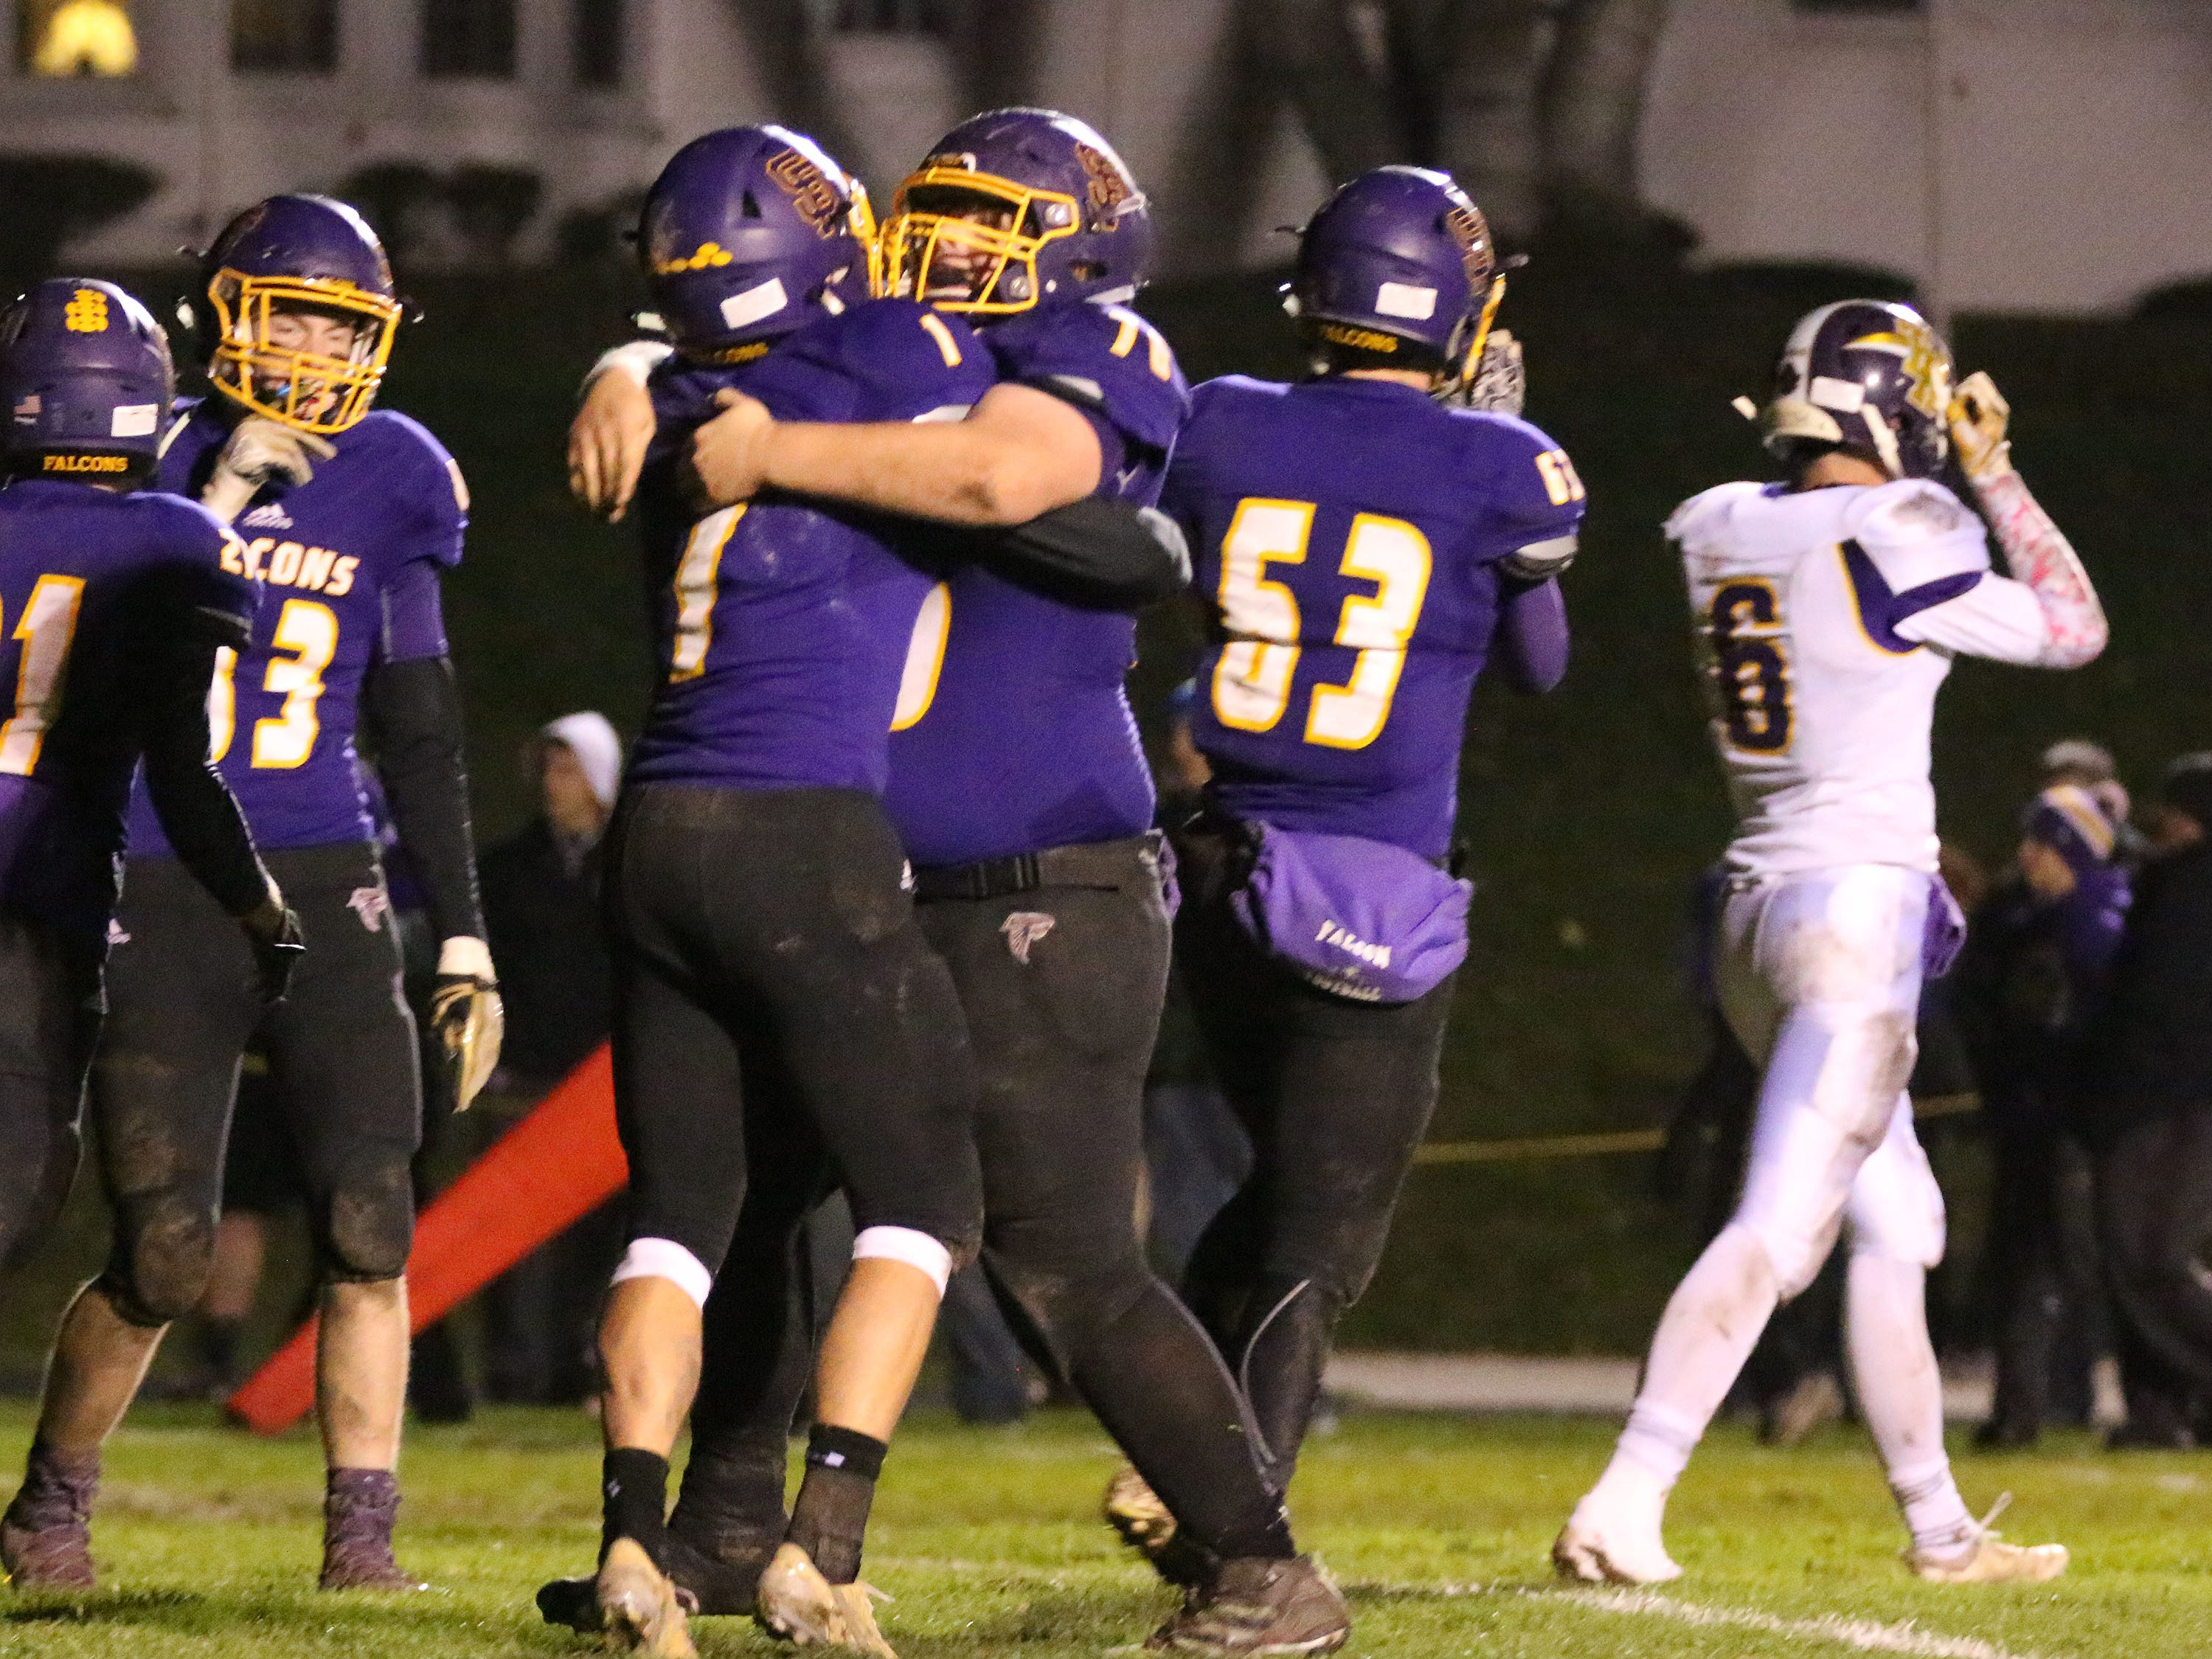 Sheboygan Falls players react to their 21-14 victory over Two Rivers, Friday, October 12, 2018, in Sheboygan Falls, Wis.